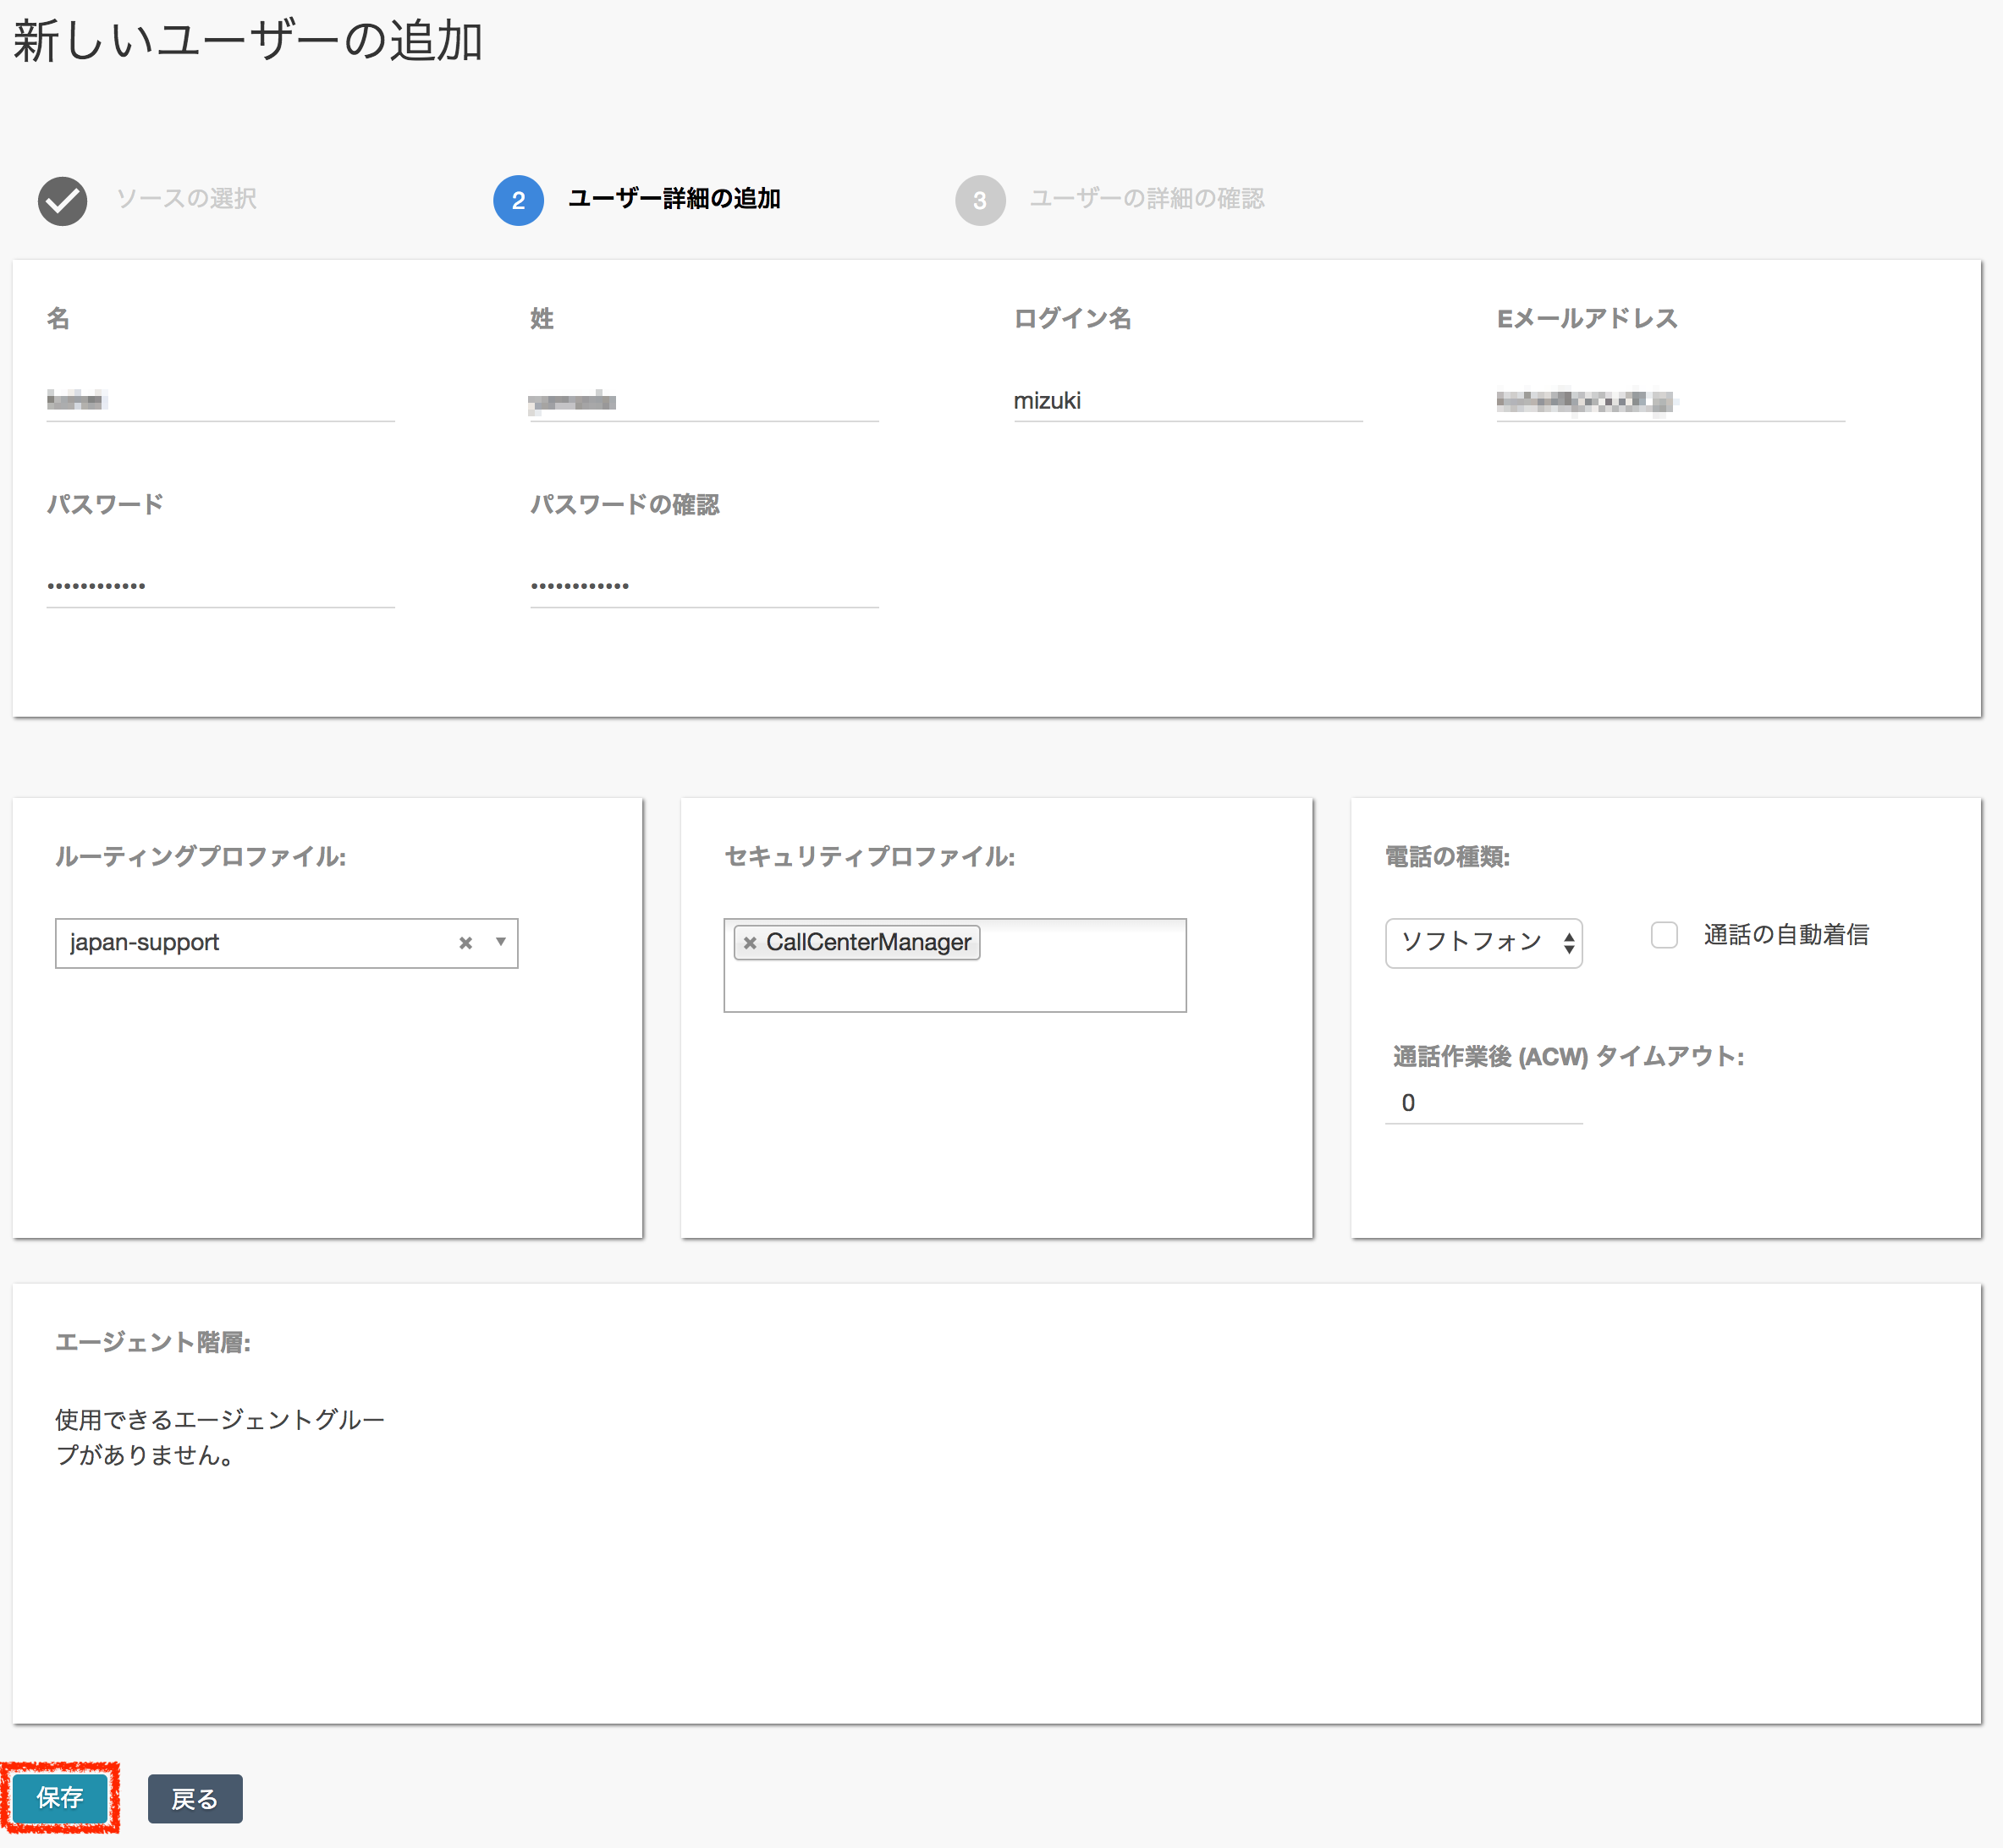 screencapture-kooooohei-awsapps-connect-users-1517274167160.png